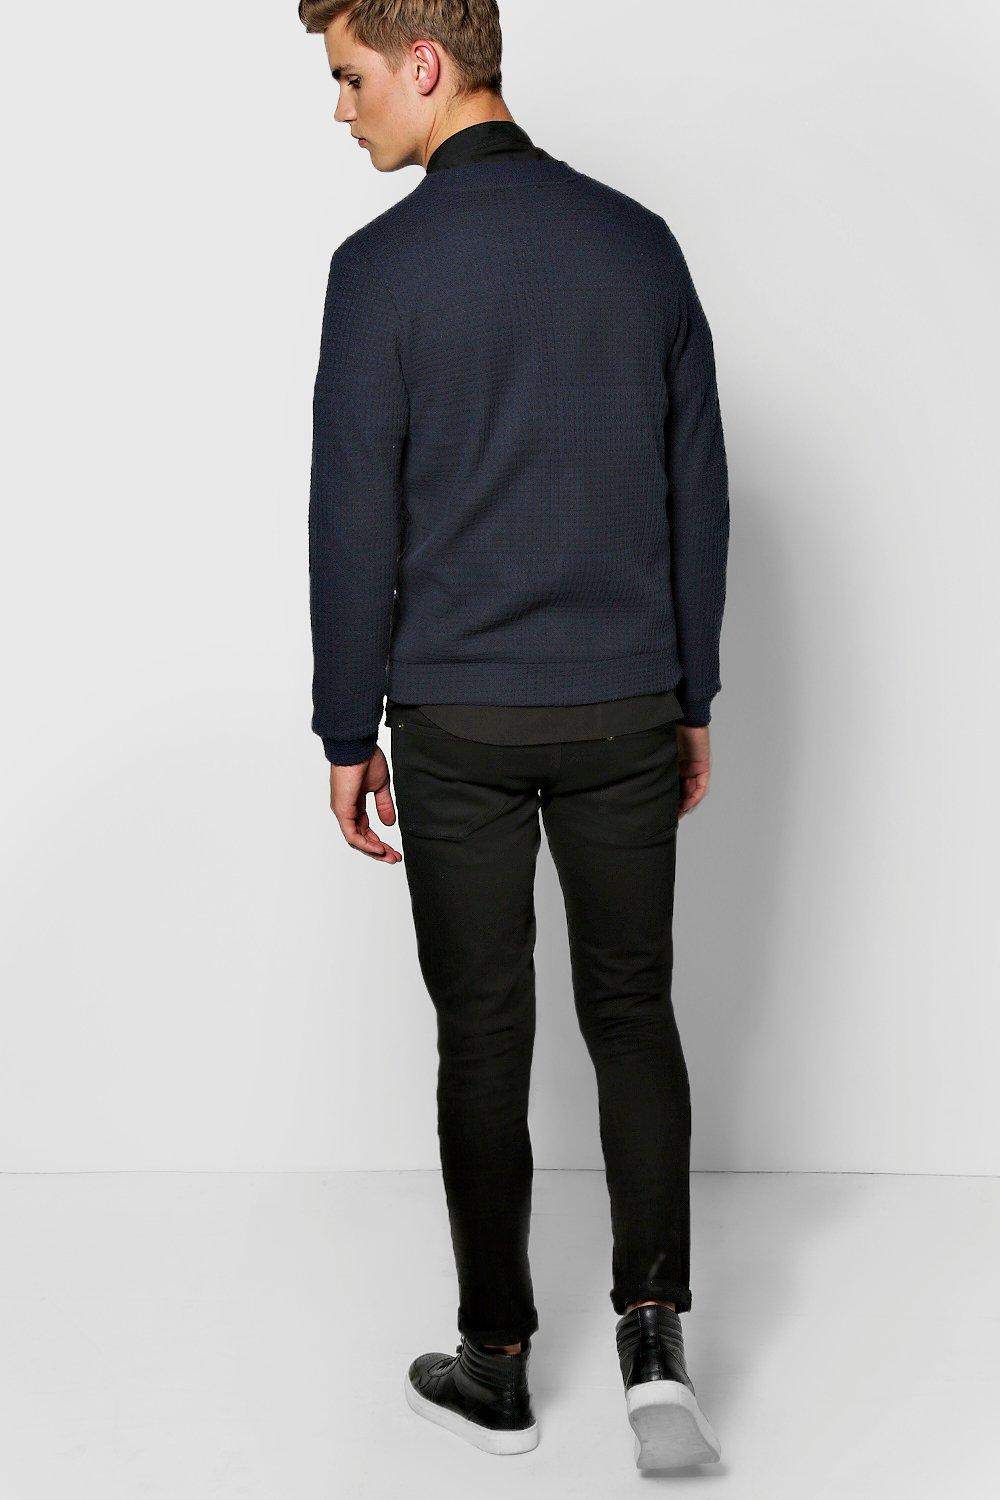 Boohoo Cotton Brushed Waffle Knitted Bomber in Navy (Blue) for Men